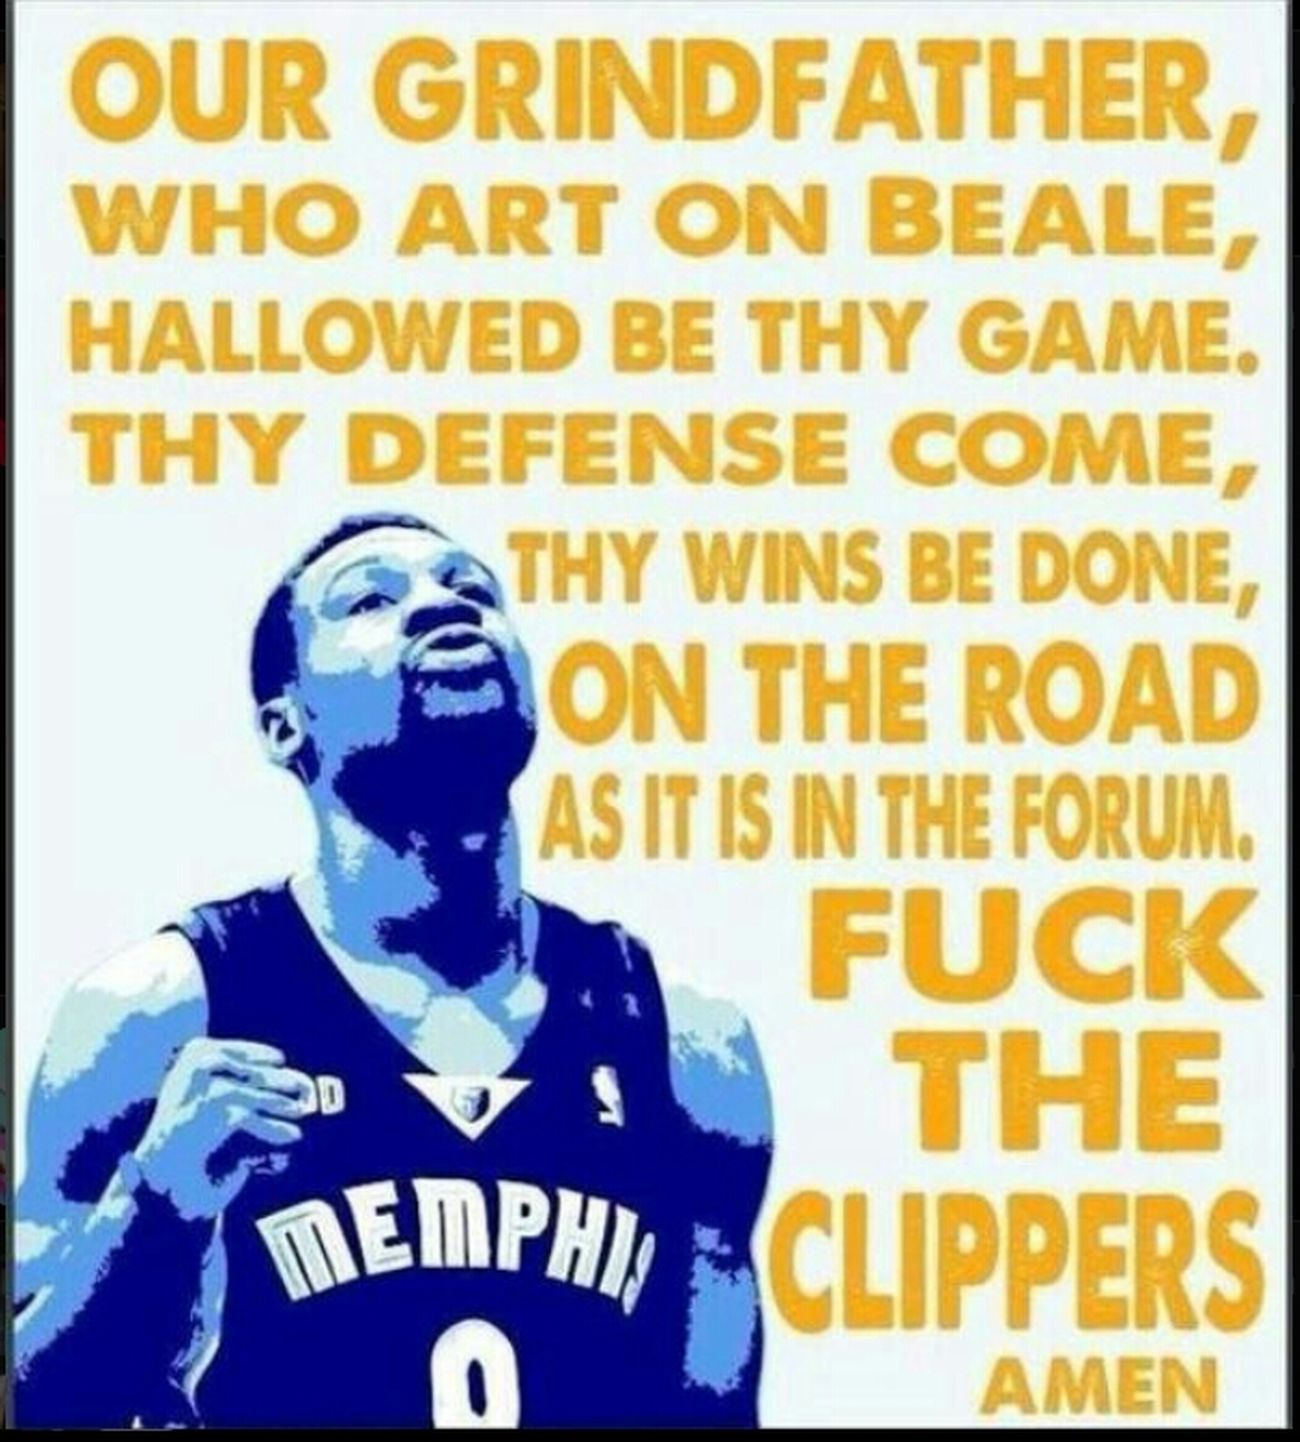 Memphis Grizzlies GrindFather GrizzCoutry